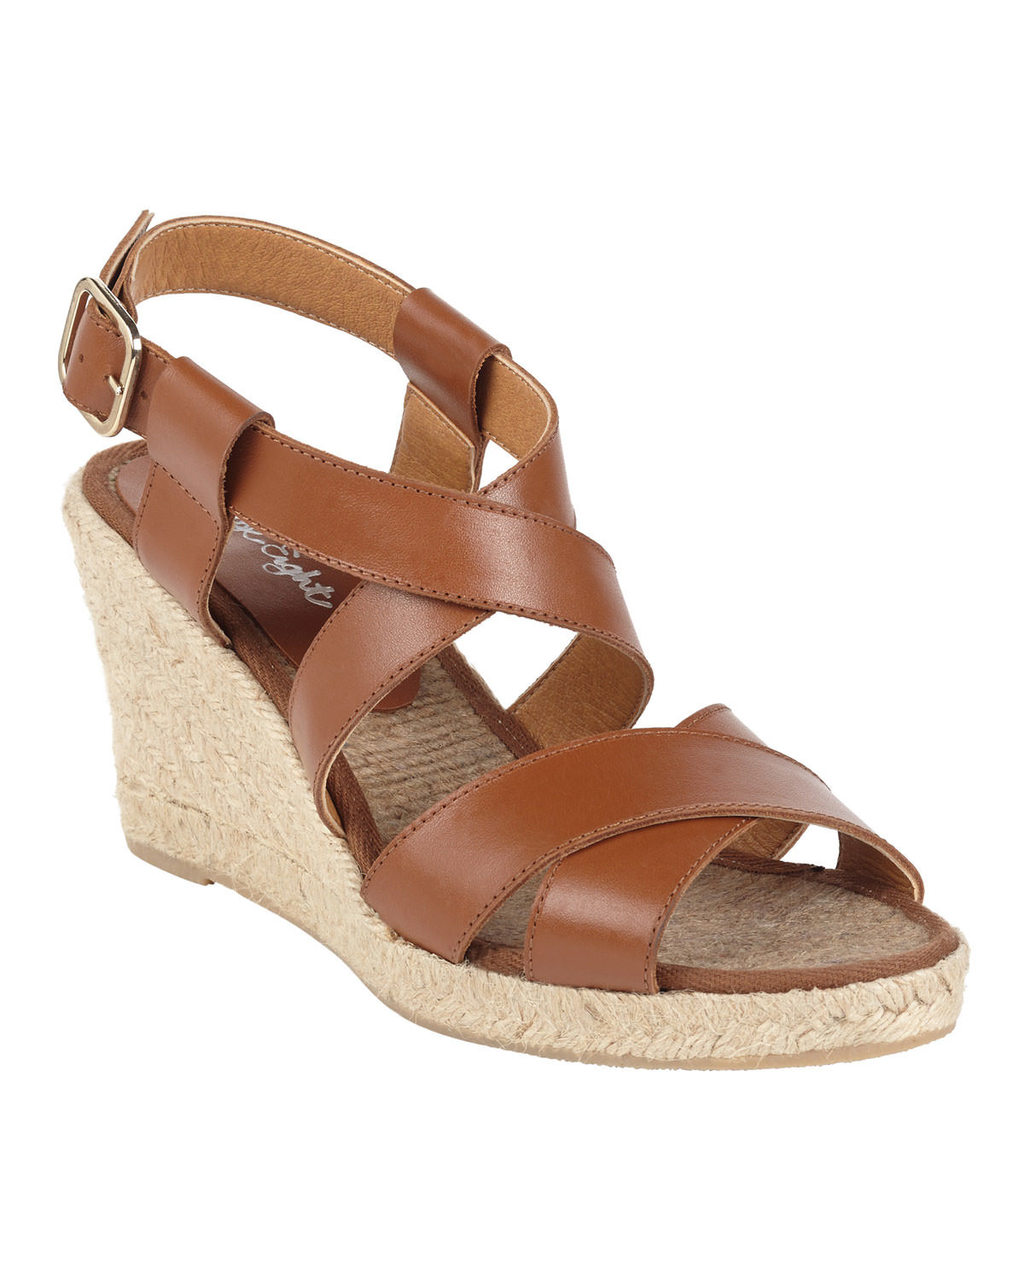 Tilly Leather Wedge - predominant colour: tan; occasions: casual, holiday; material: leather; heel height: high; ankle detail: ankle strap; heel: wedge; toe: open toe/peeptoe; style: strappy; finish: plain; pattern: plain; shoe detail: platform; season: s/s 2016; wardrobe: highlight